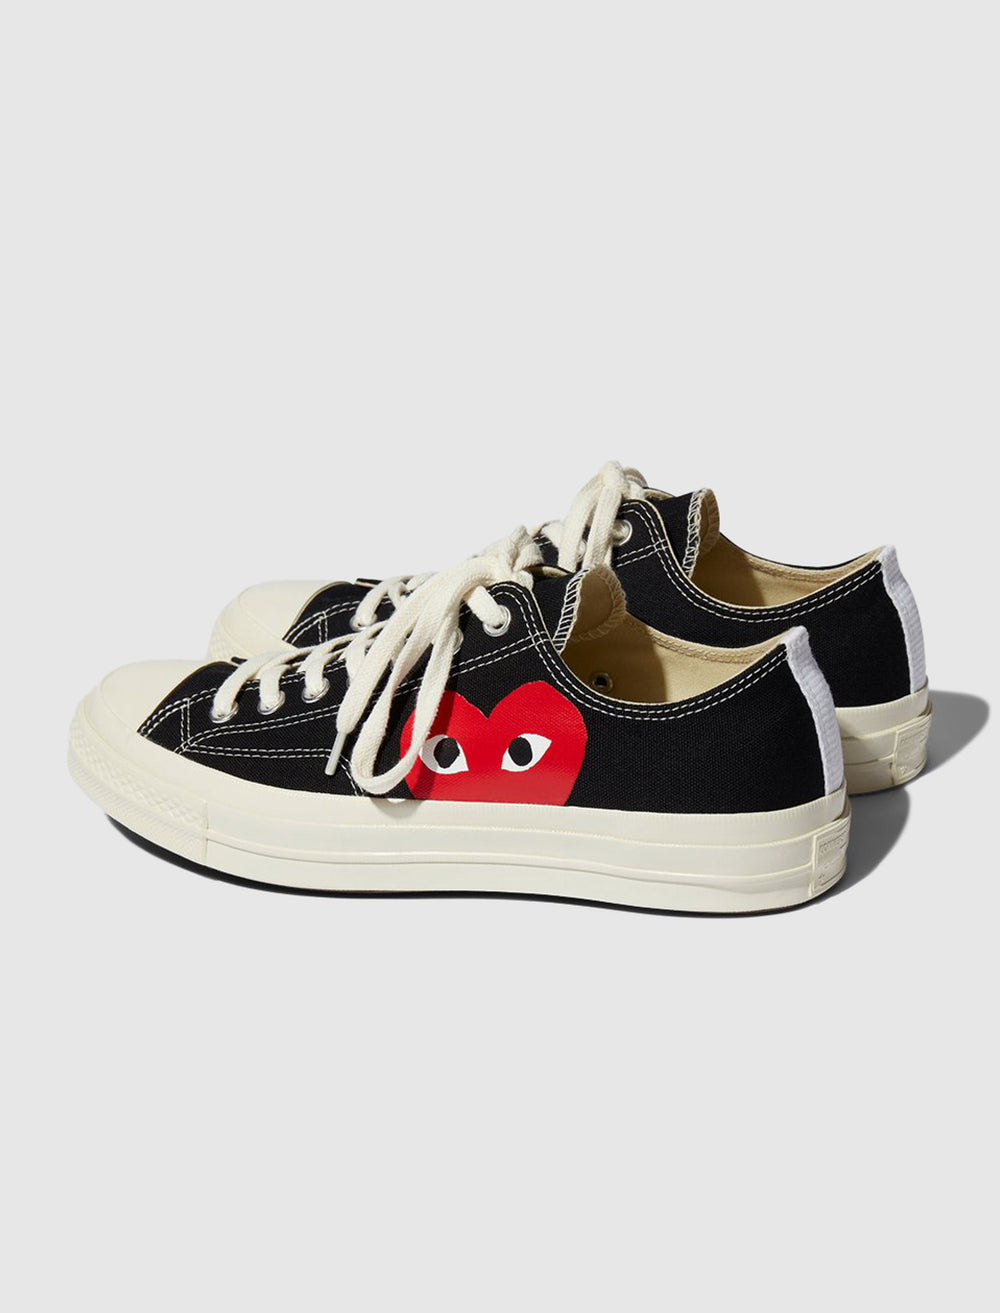 cdg-x-converse-low-5